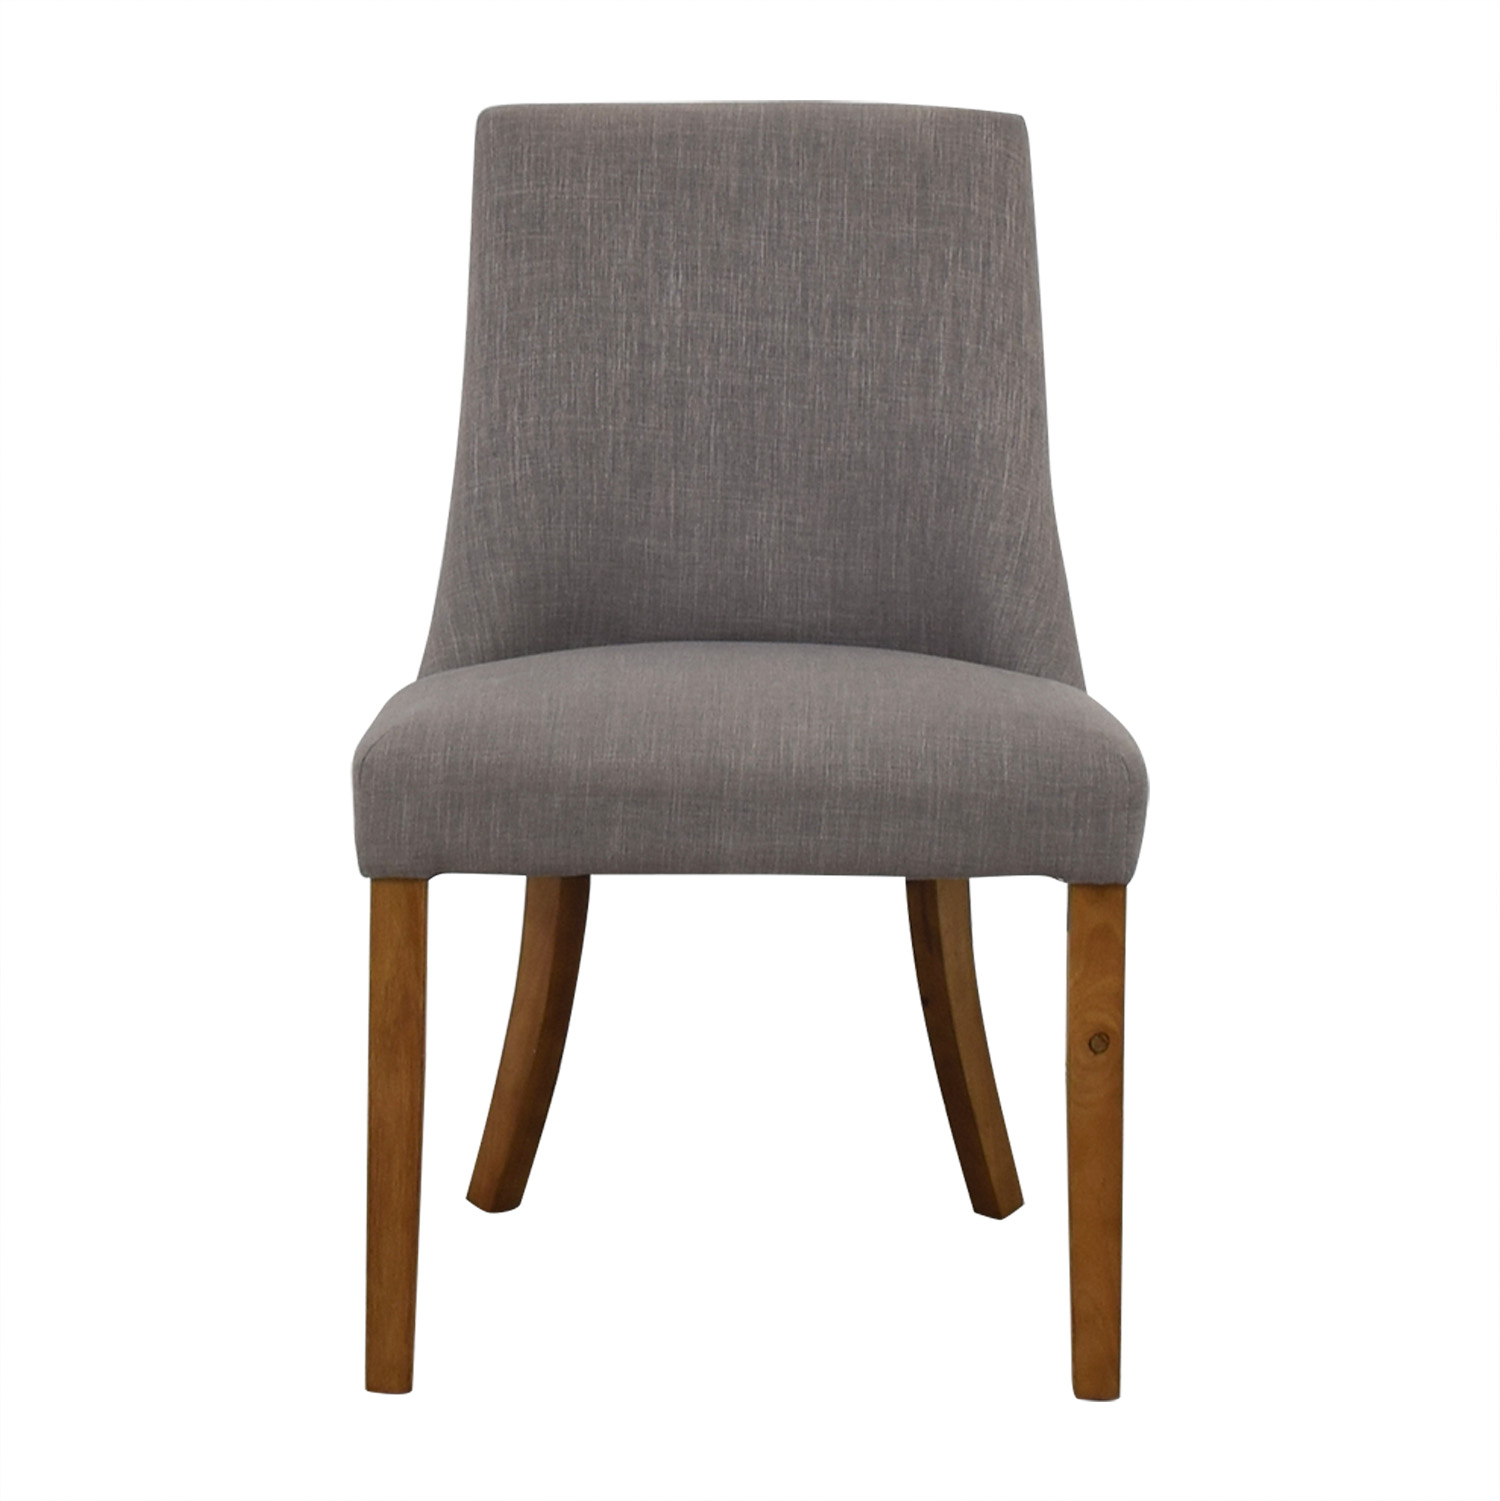 Gray High Back Chair